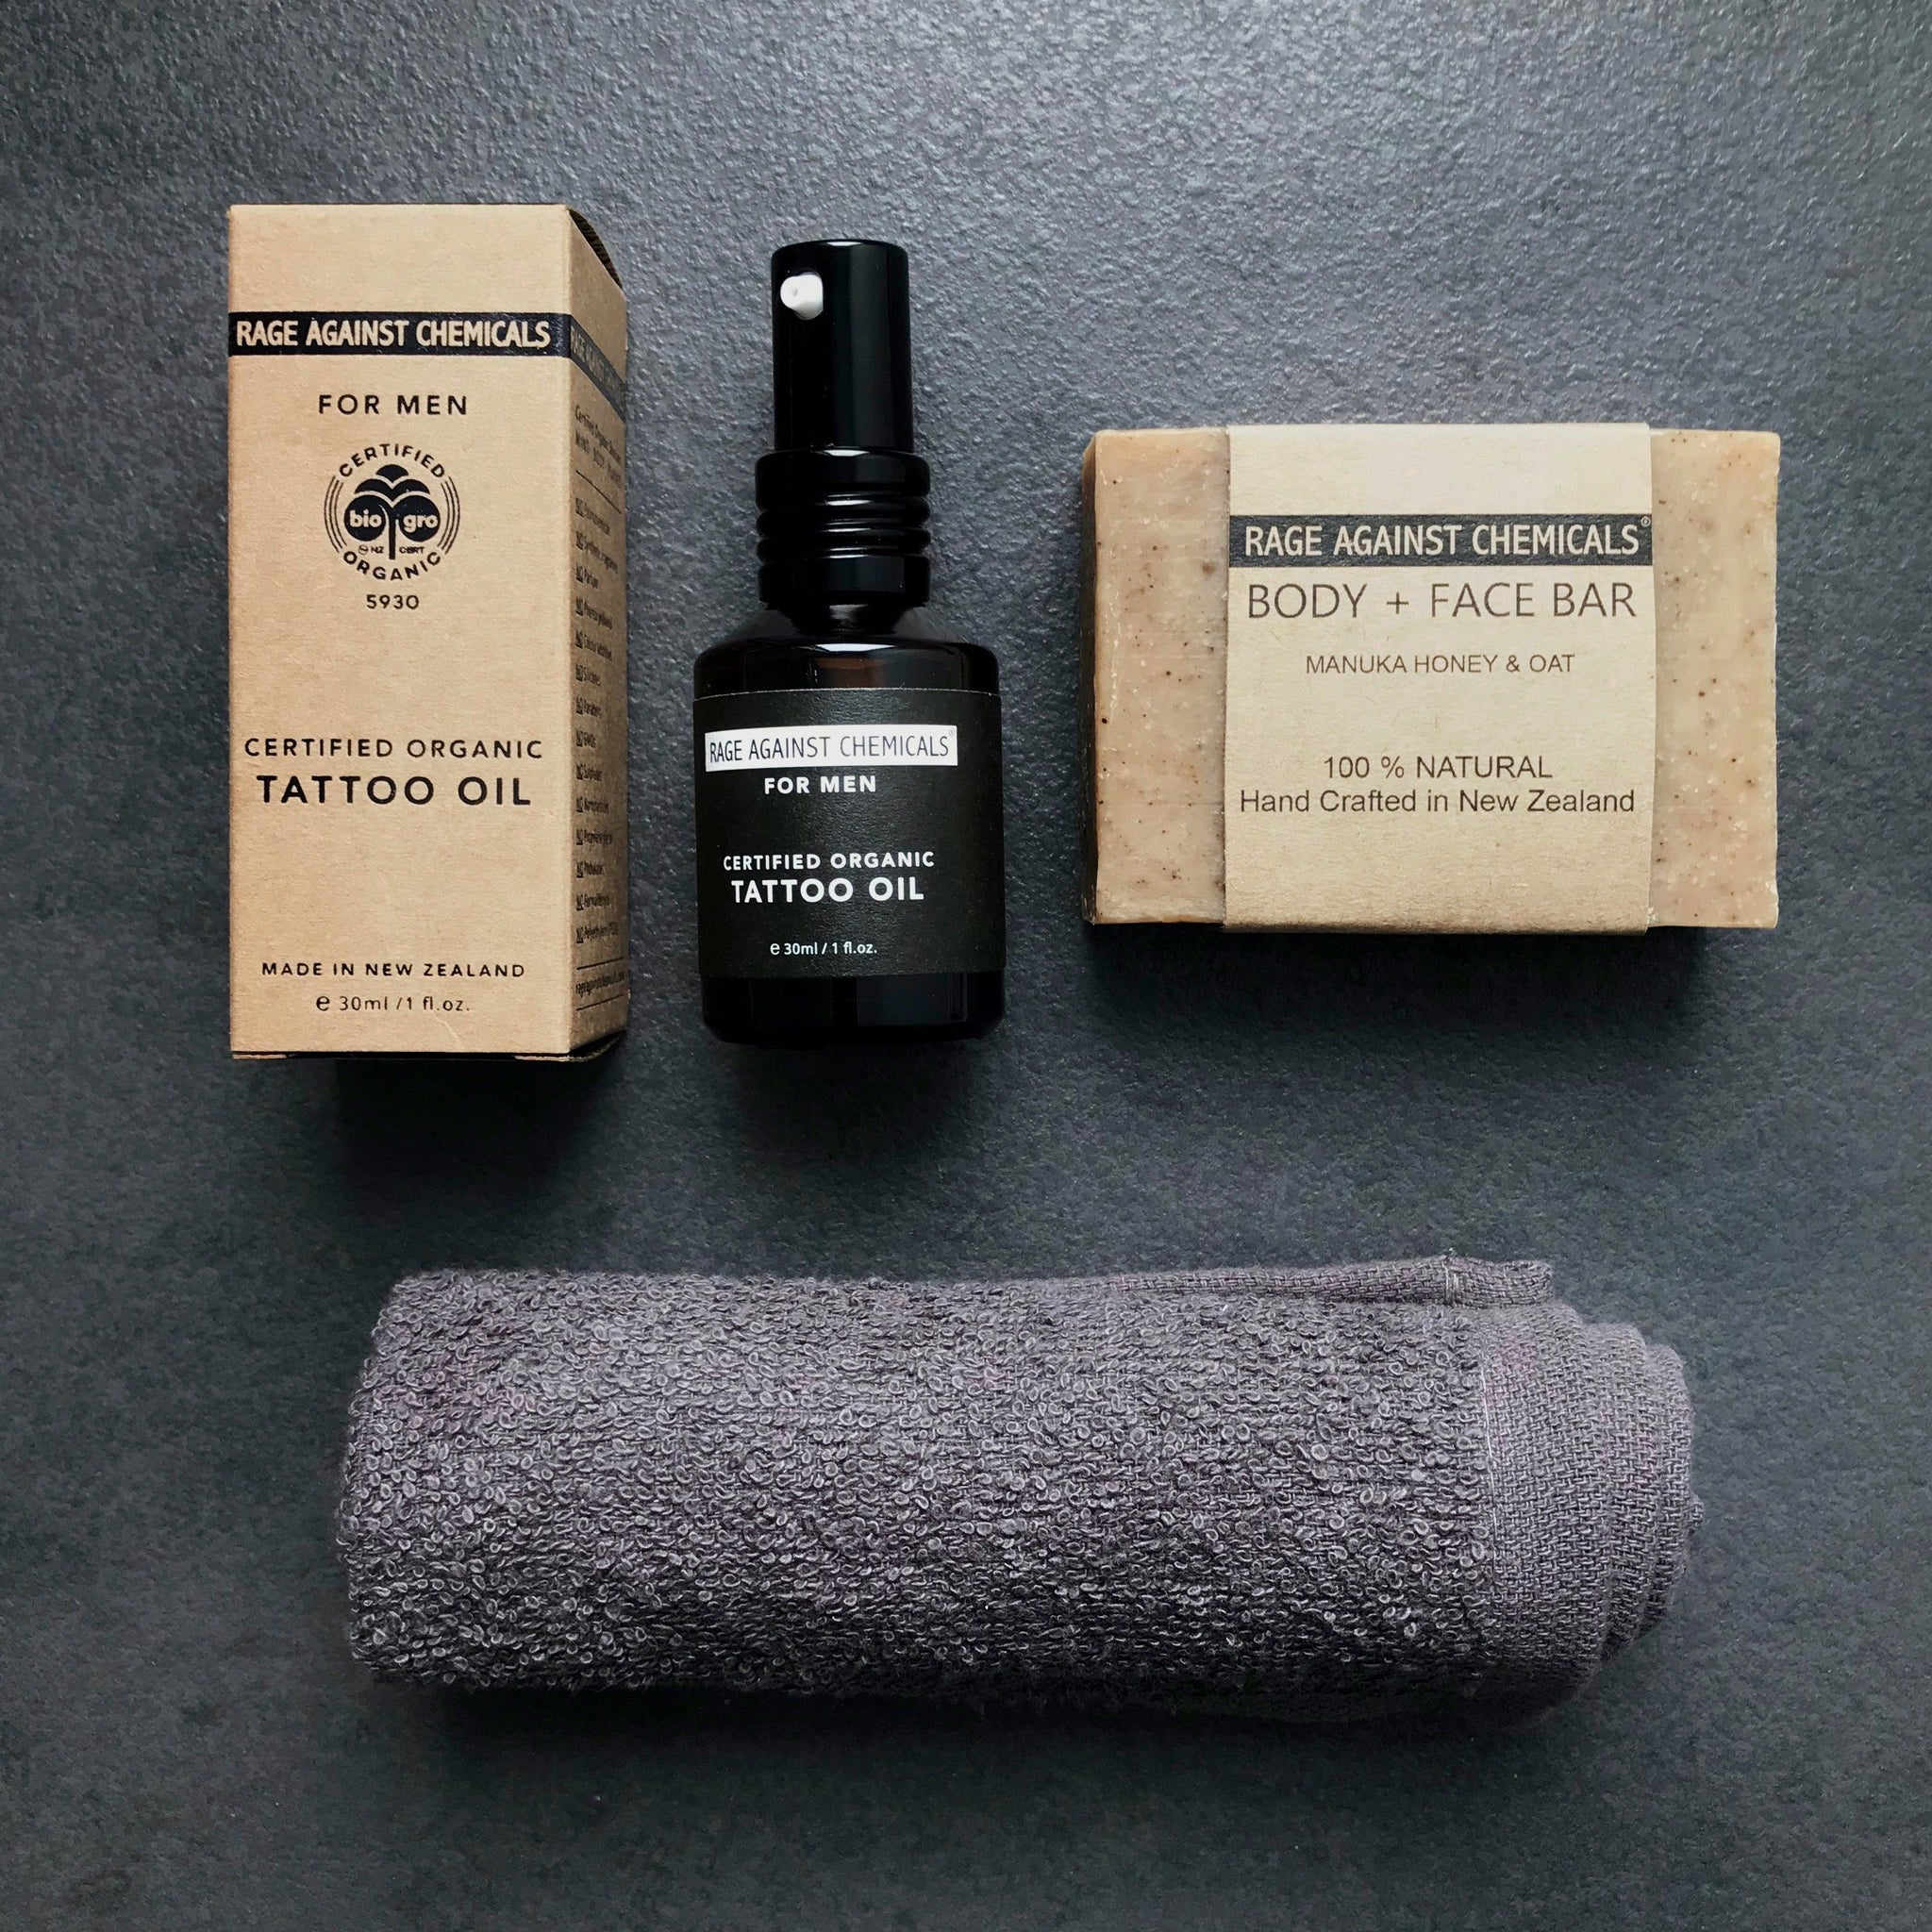 Tattoo Oil & Body Scrub Gift Set - Men's Skincare